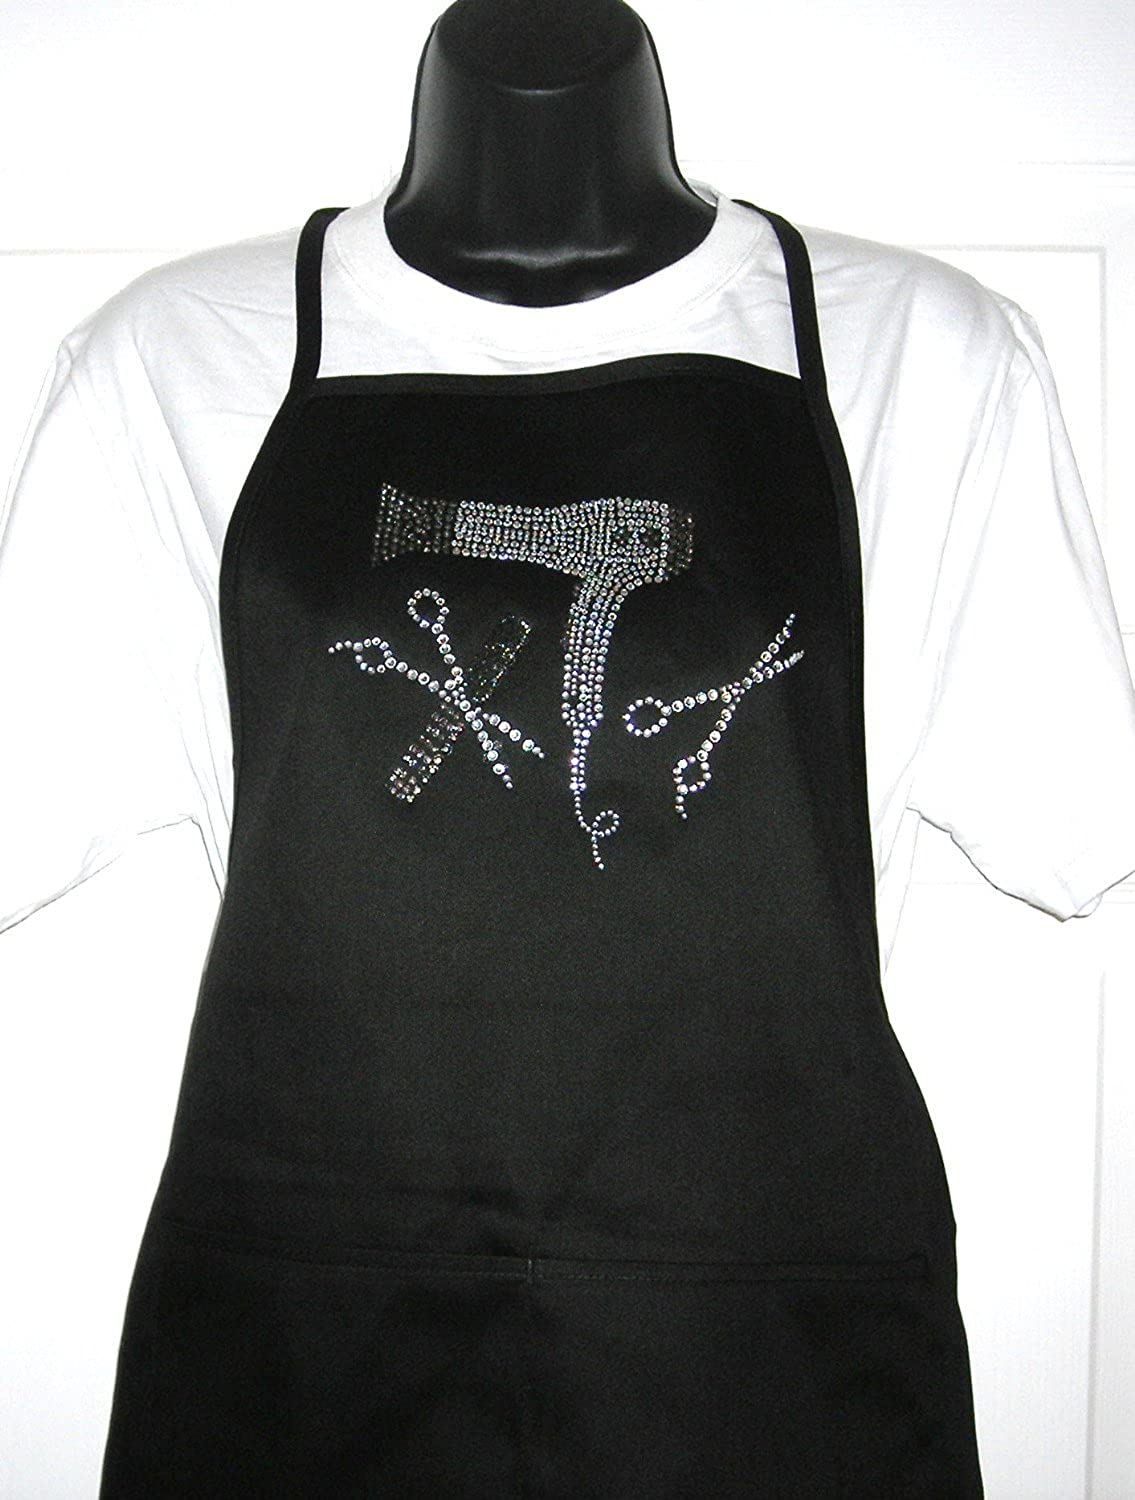 Classic Black Apron - ' Hair Stylist Tools ' Rhinestone Two Pocket Cotton Blend Apron